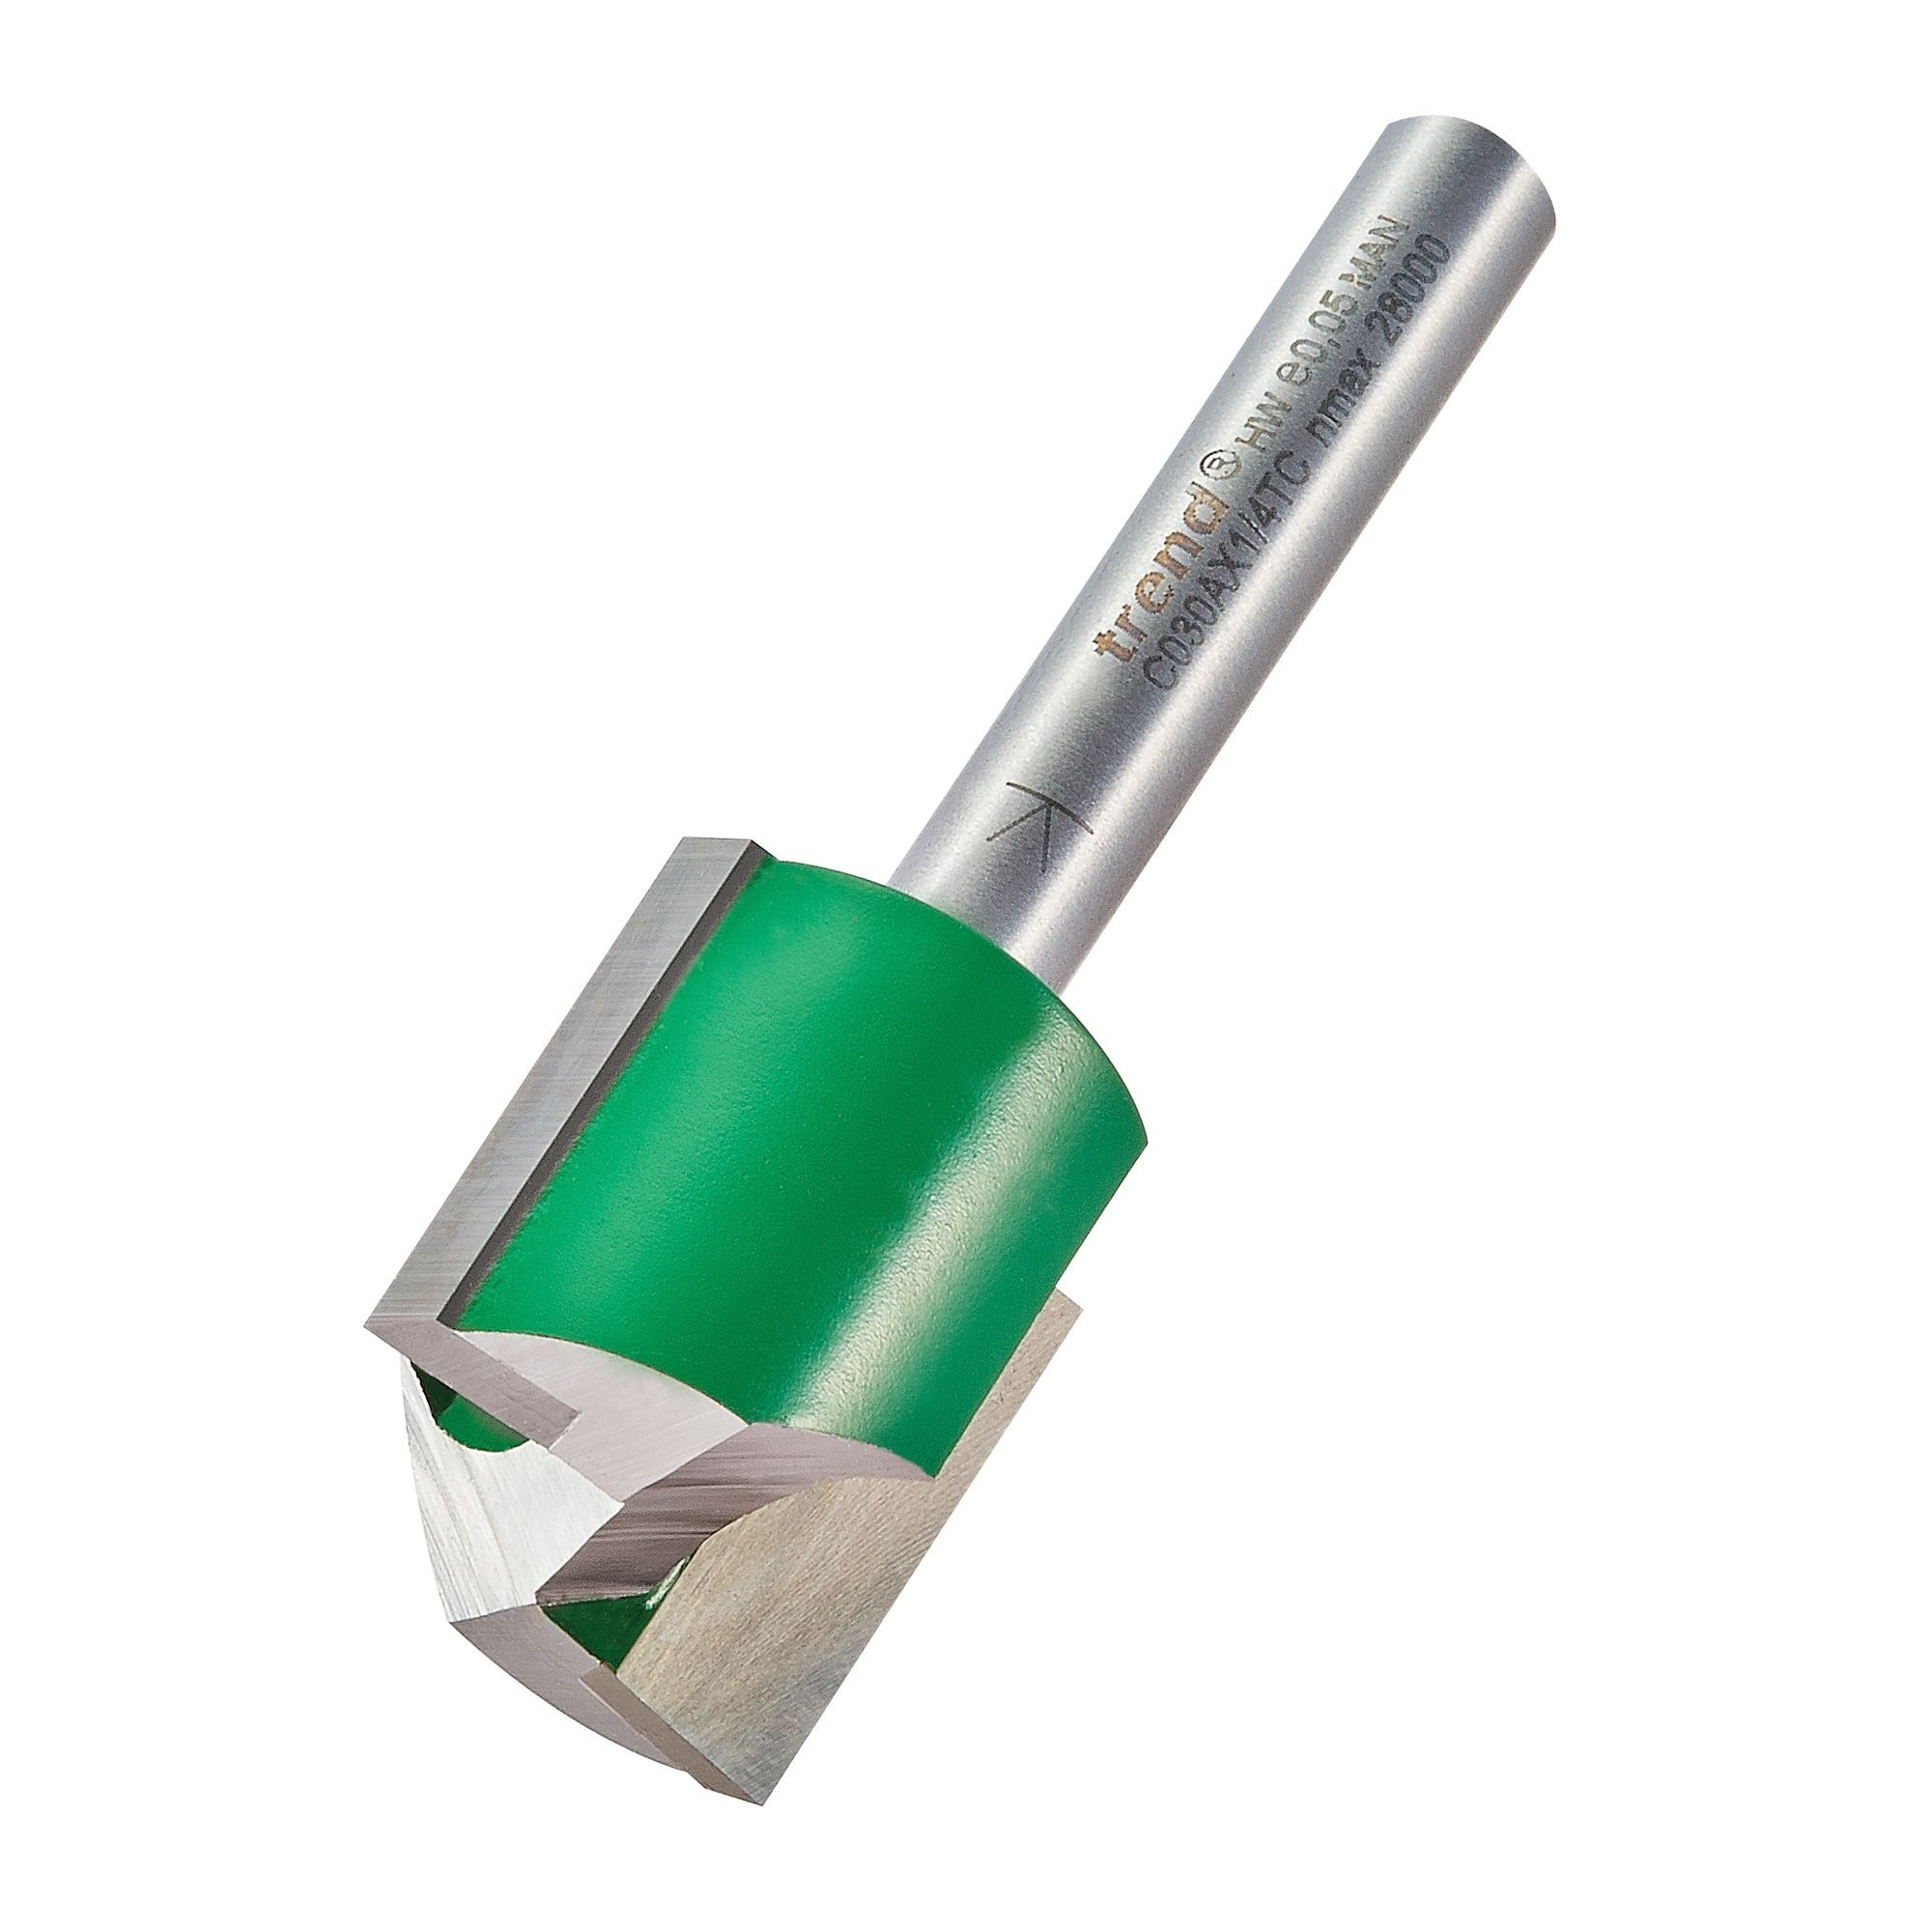 """TREND TWO FLUTE STRAIGHT ROUTER CUTTER C030A 20MM (1/4"""" SHANK)"""